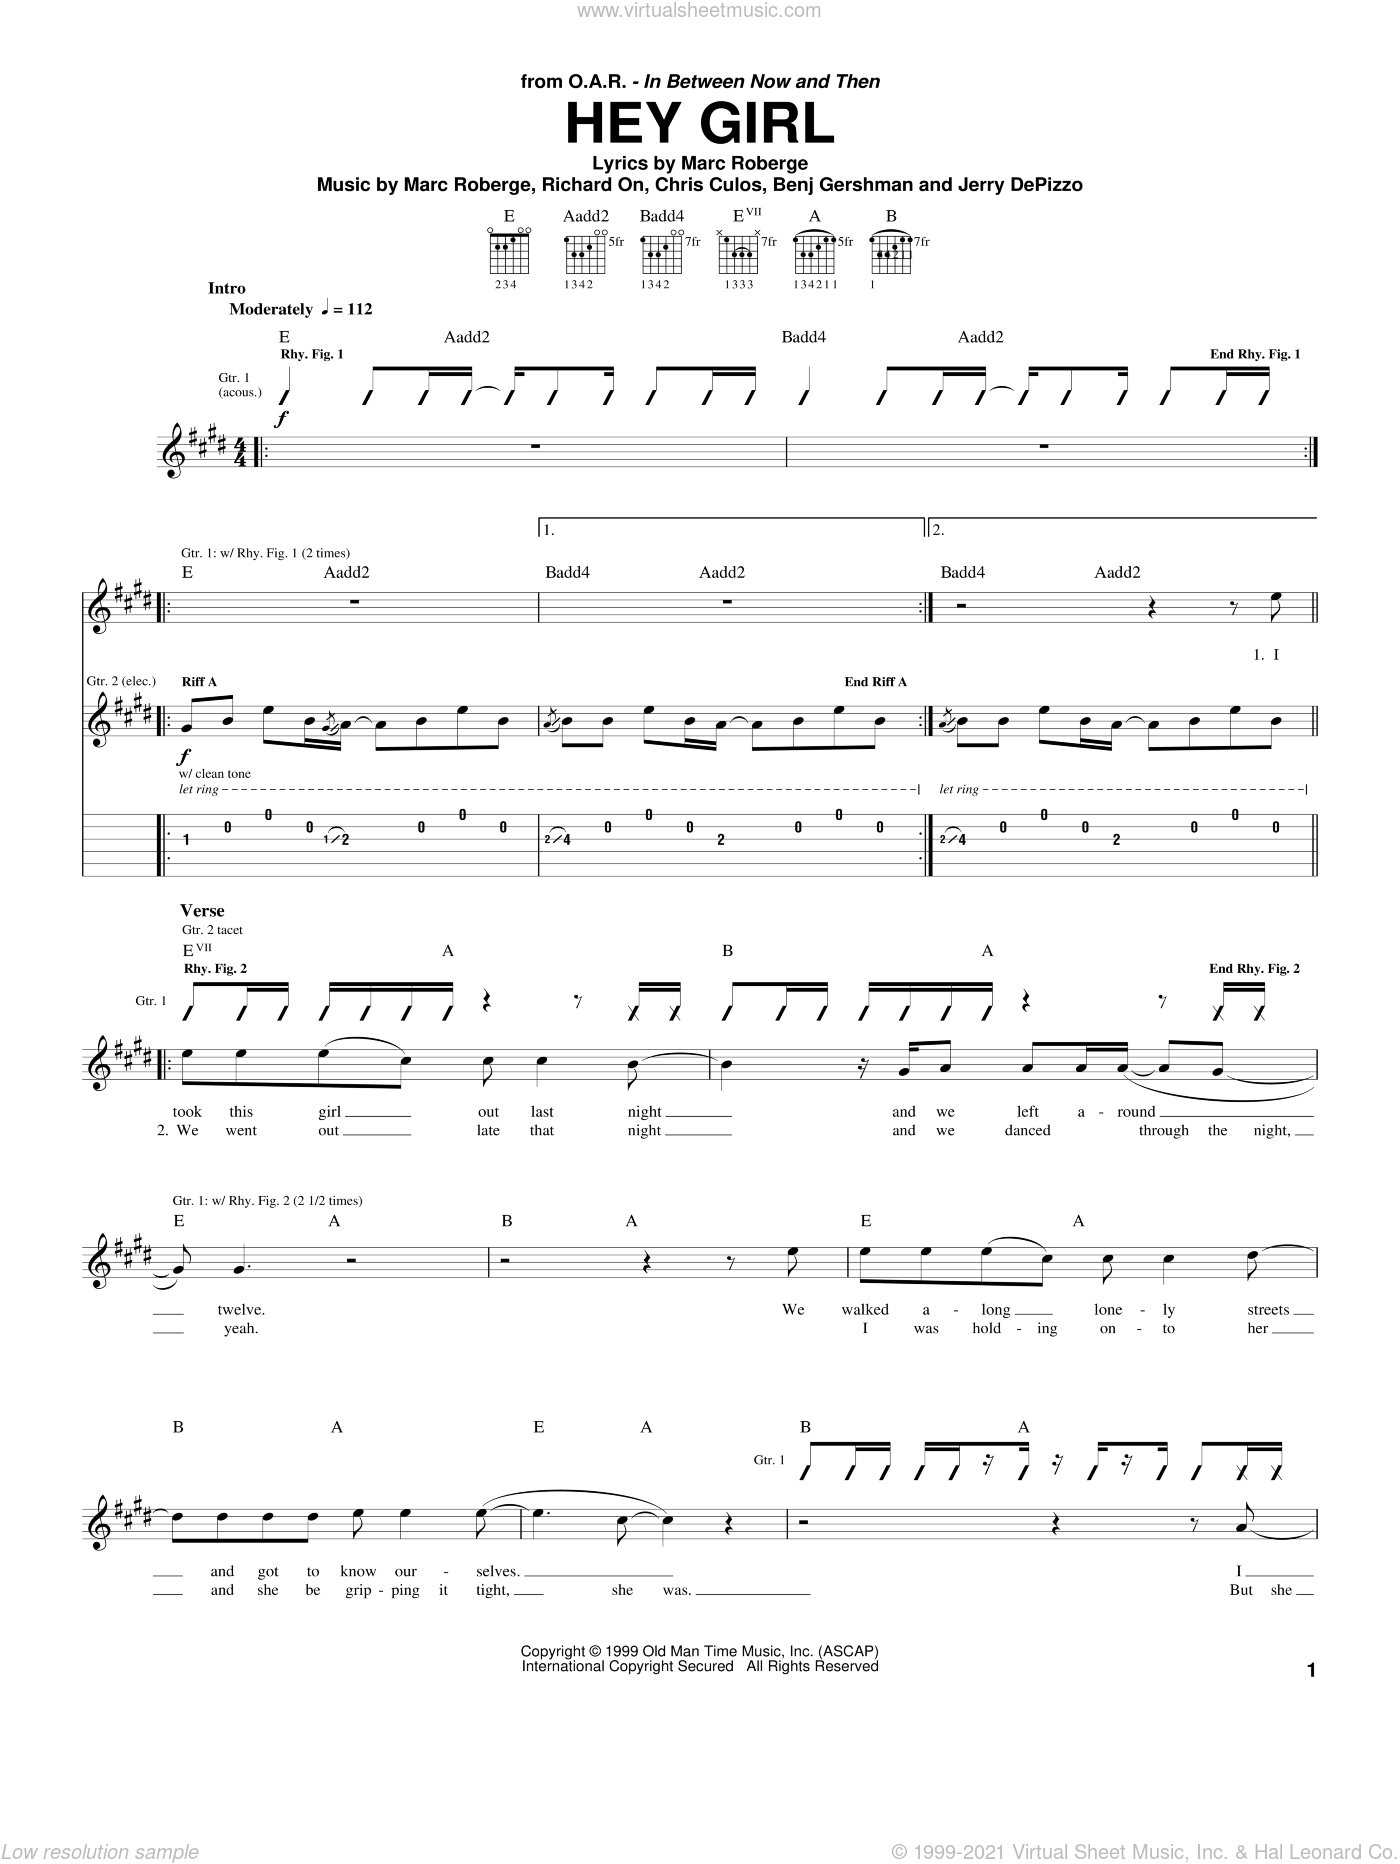 Hey Girl sheet music for guitar (tablature) by Richard On